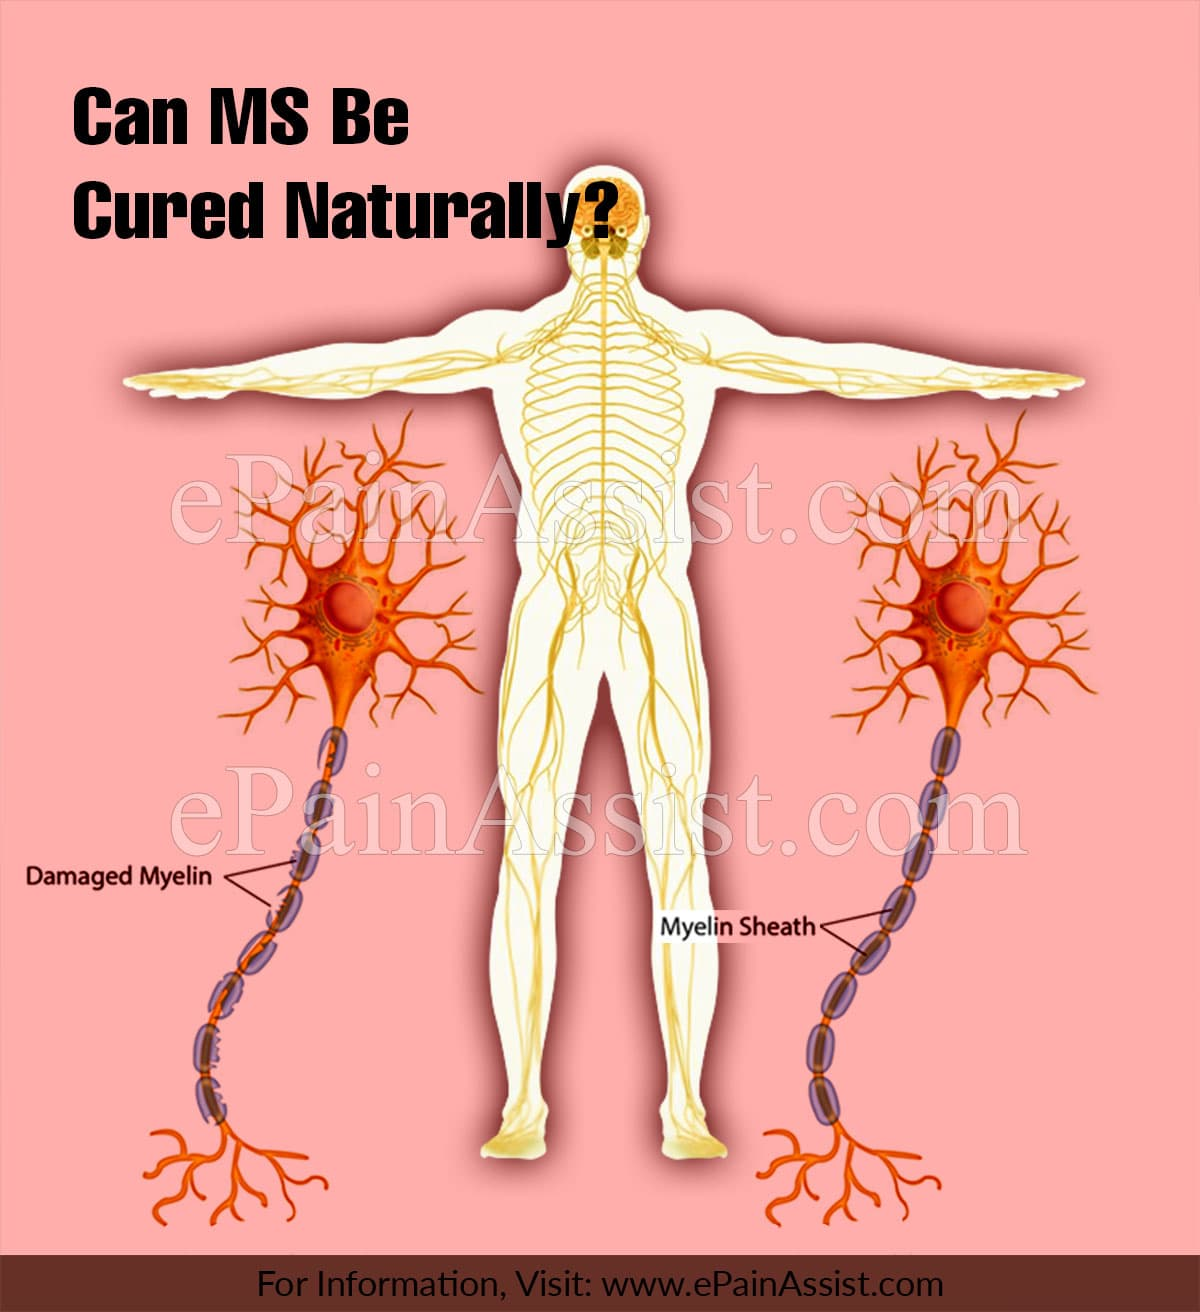 Can MS Be Cured Naturally?